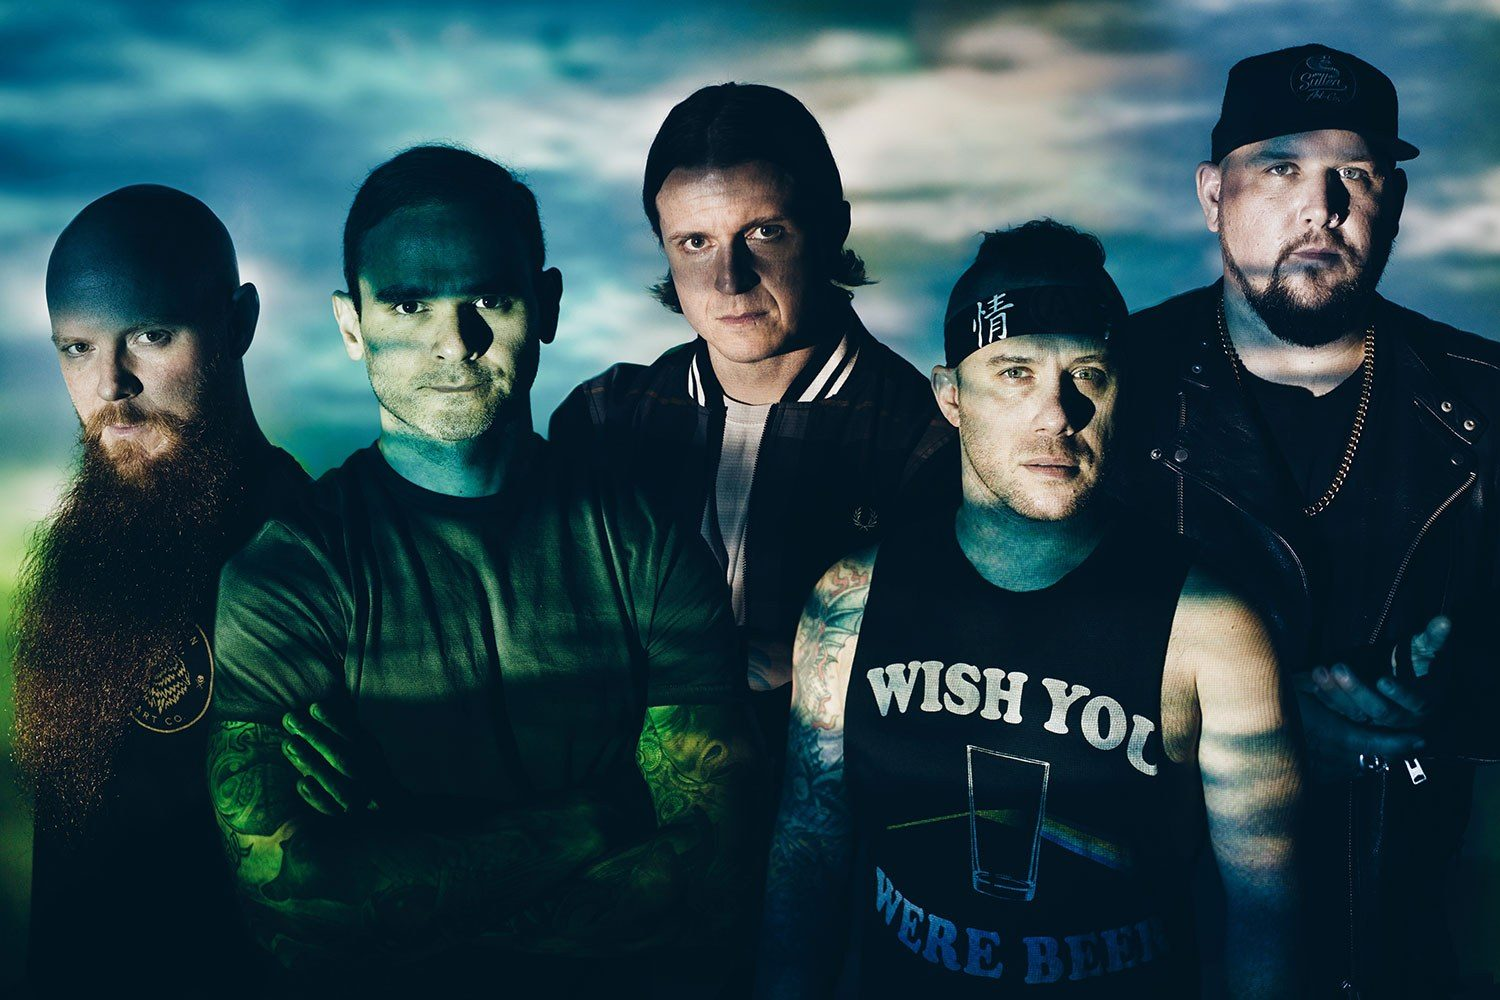 Coffee, nuts and Draco Malfoy: here's everything you need to know about Atreyu's new album 'In Our Wake'